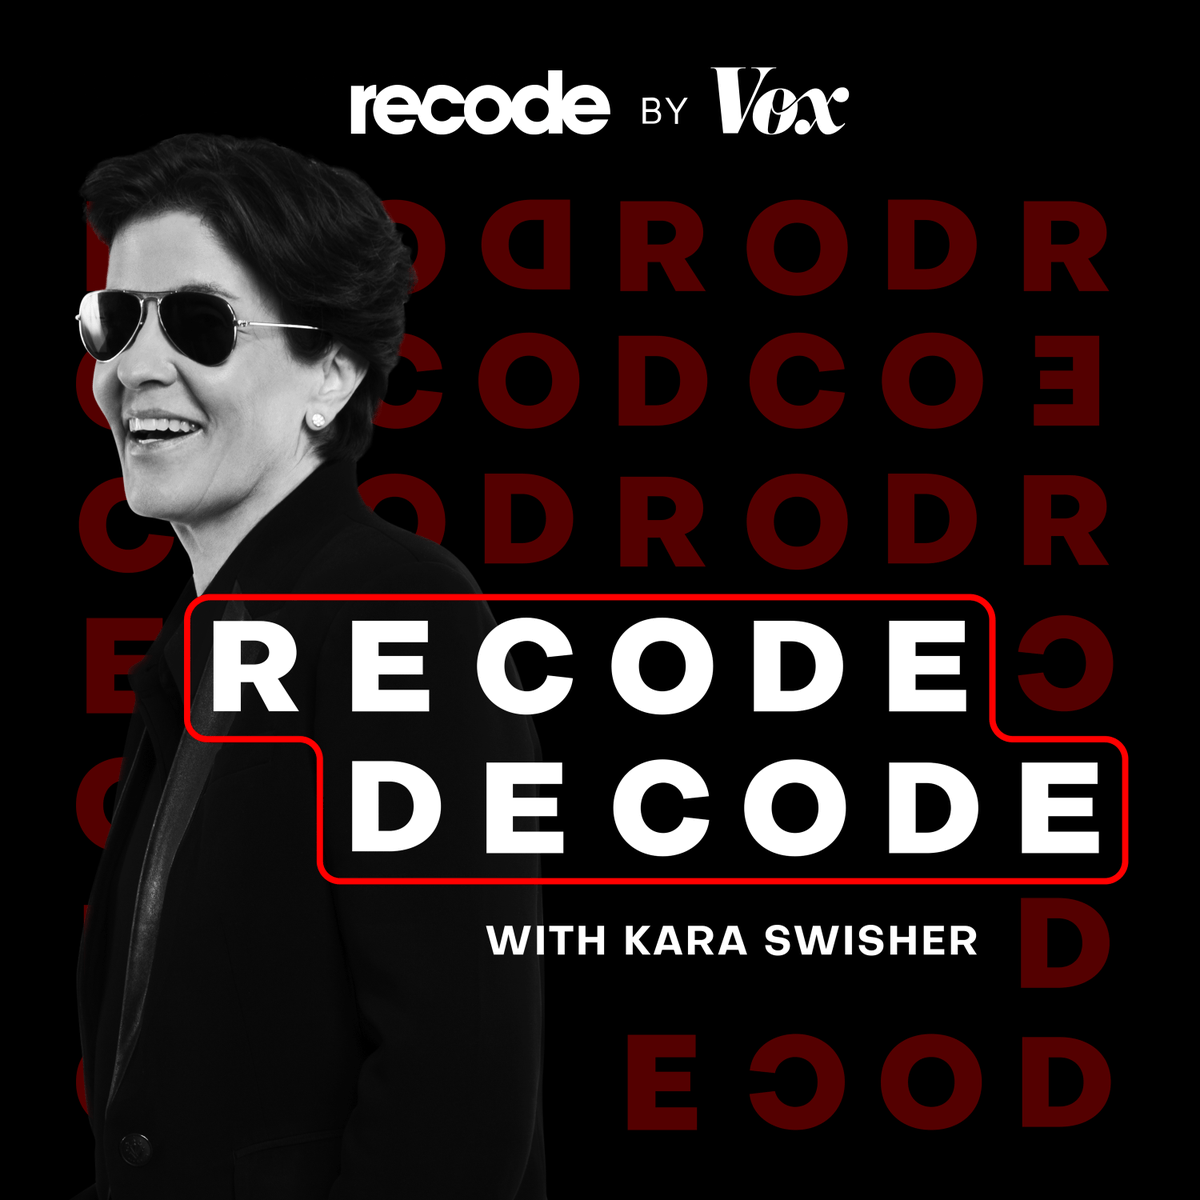 """""""We need a massive infusion of economic hope and opportunity into the life of the average American. From my interview with @karaswisher on the Recode Decode Podcast. @Recode @voxdotcom @Stitcher stitcher.com/podcast/vox/re…"""